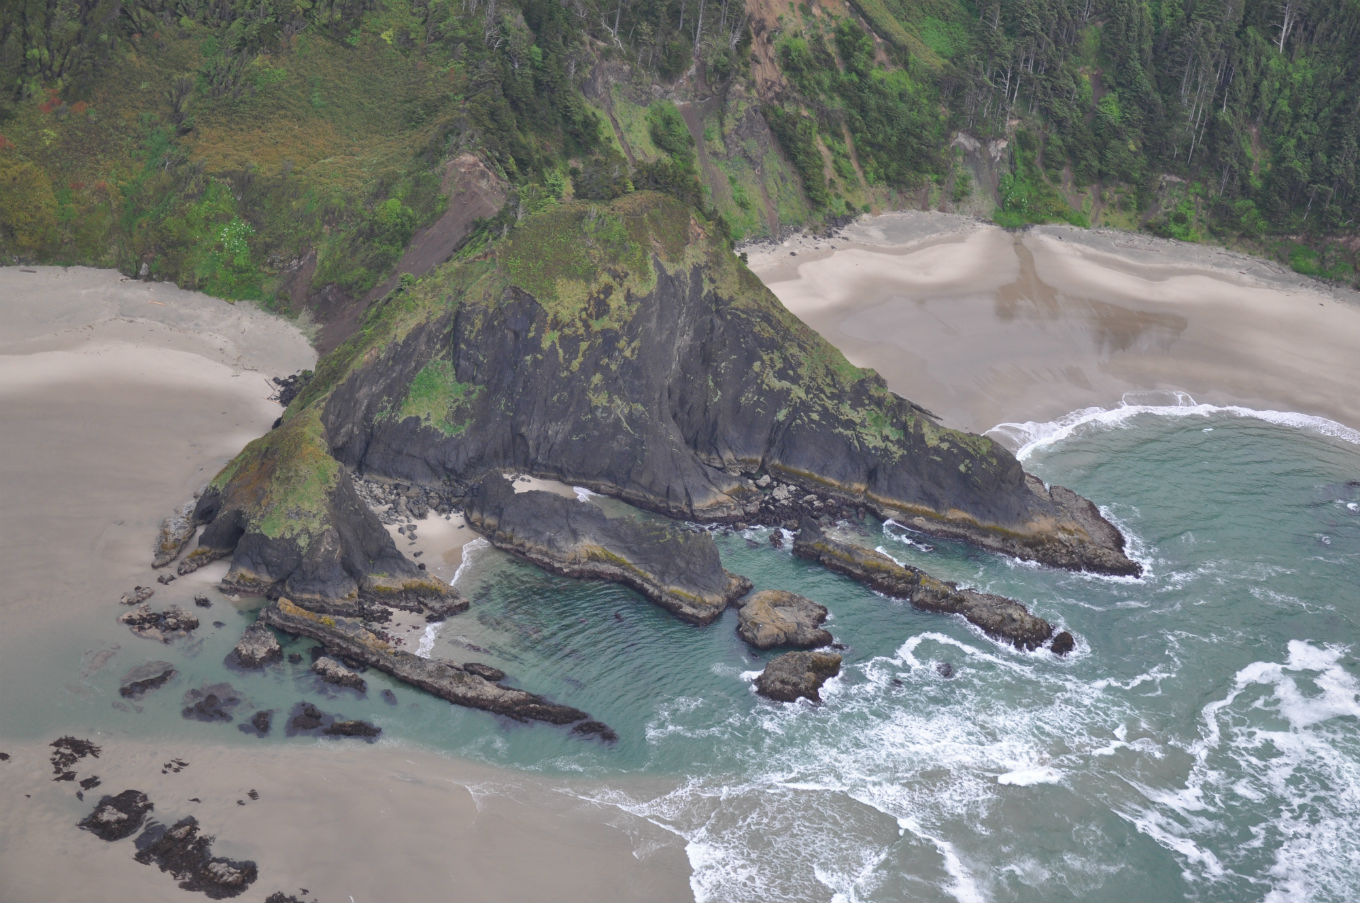 Mouth of the Salmon River, Oregon